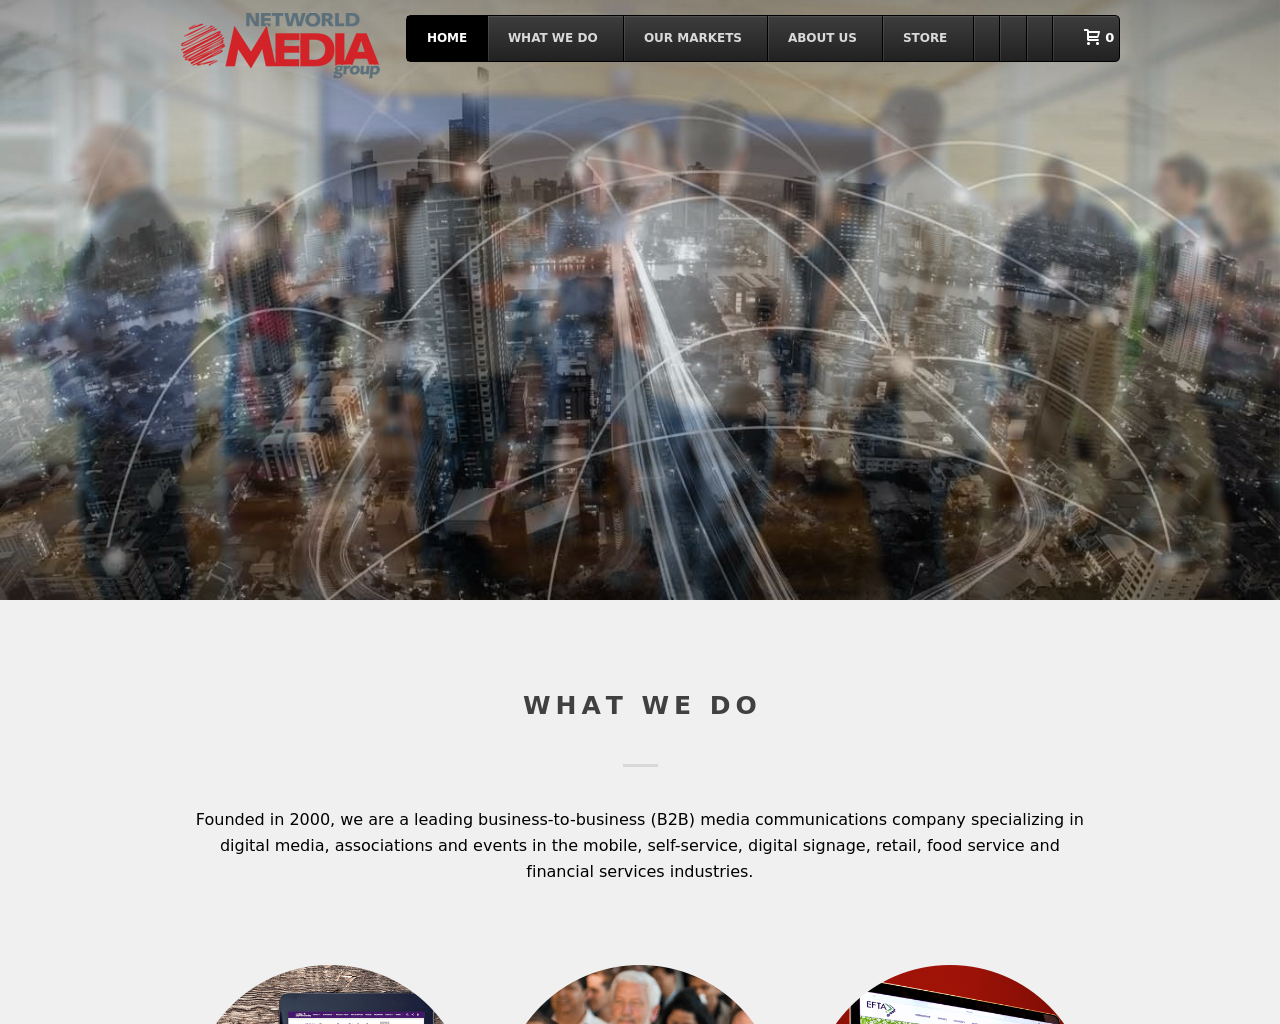 Networld-Media-Group-Advertising-Reviews-Pricing